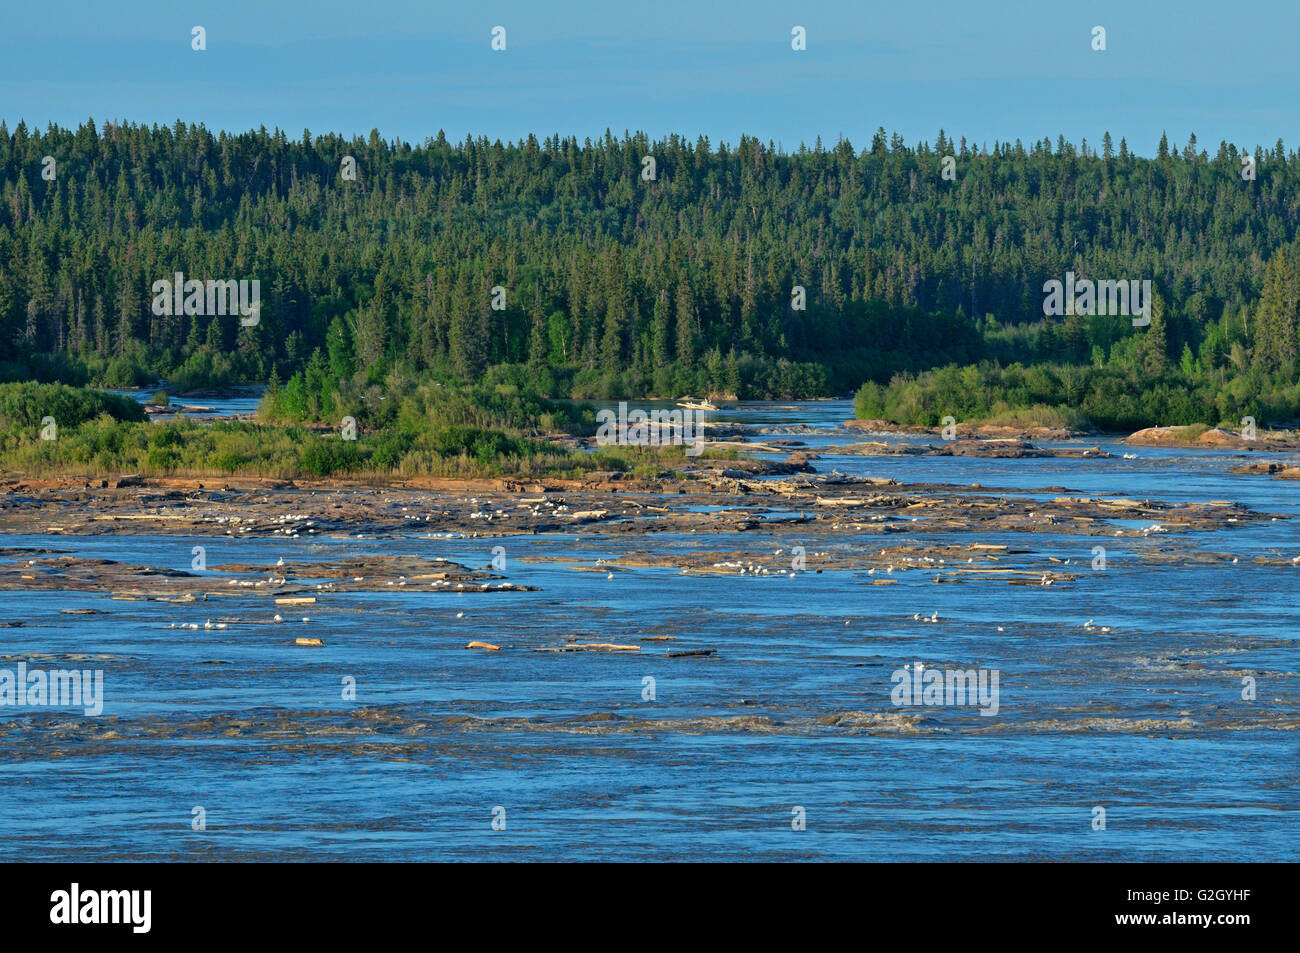 Pelican Rapids on the Slave River near Ft. Smith Northwest Territories Canada - Stock Image